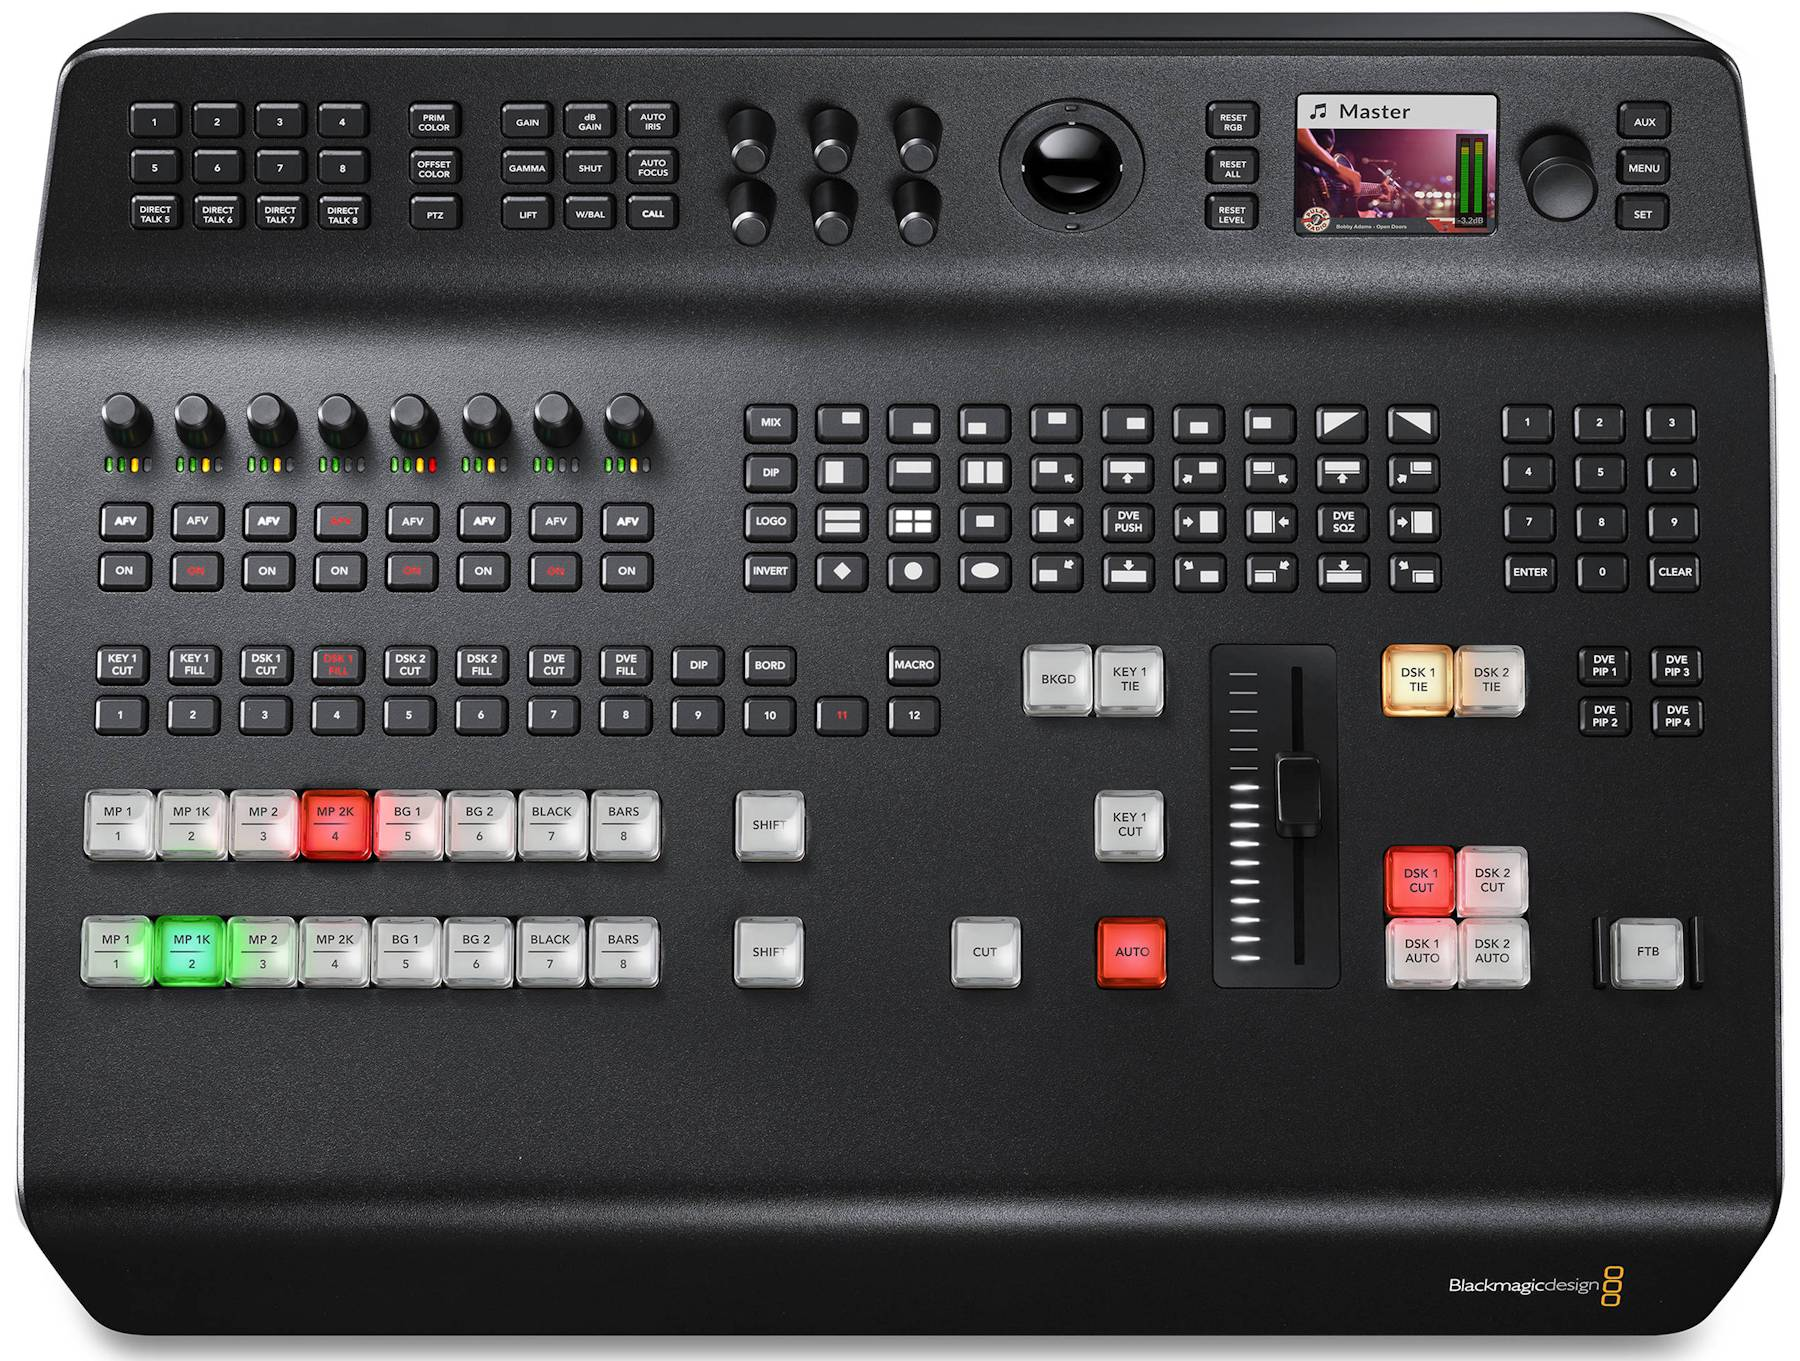 ATEM Video Switcher 4K